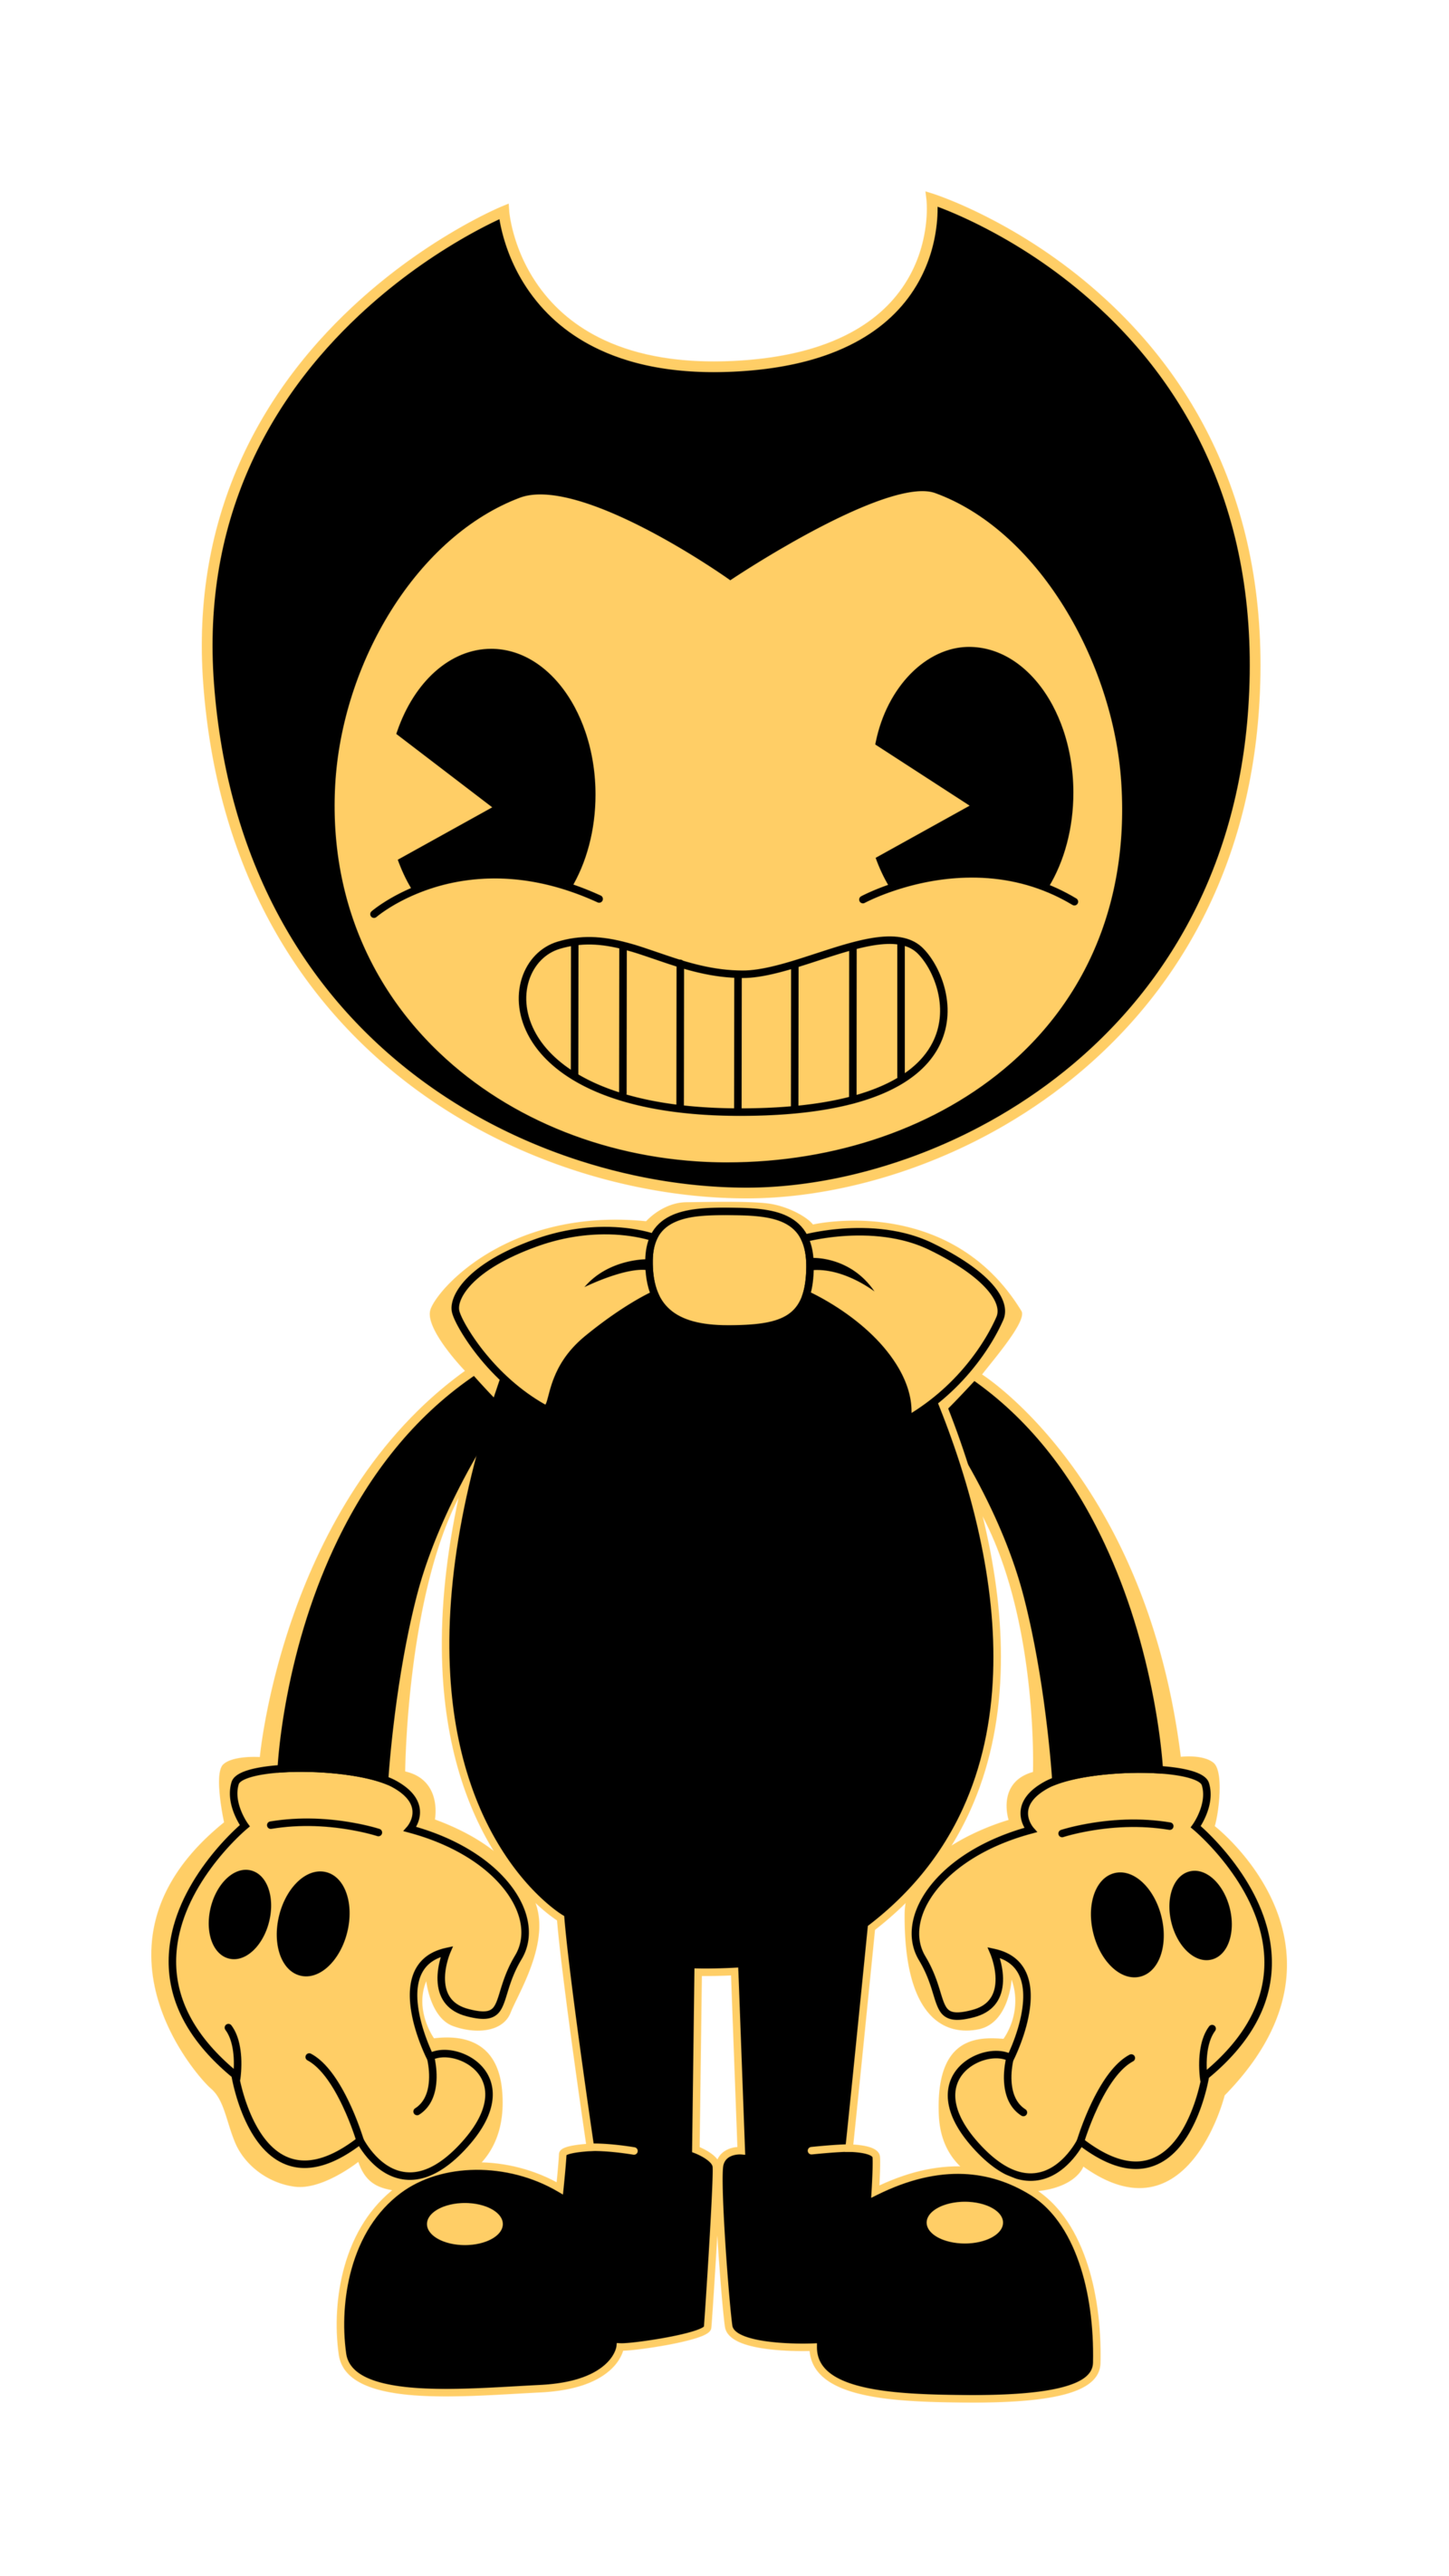 Bendy and the ink. Demon clipart evil person image download